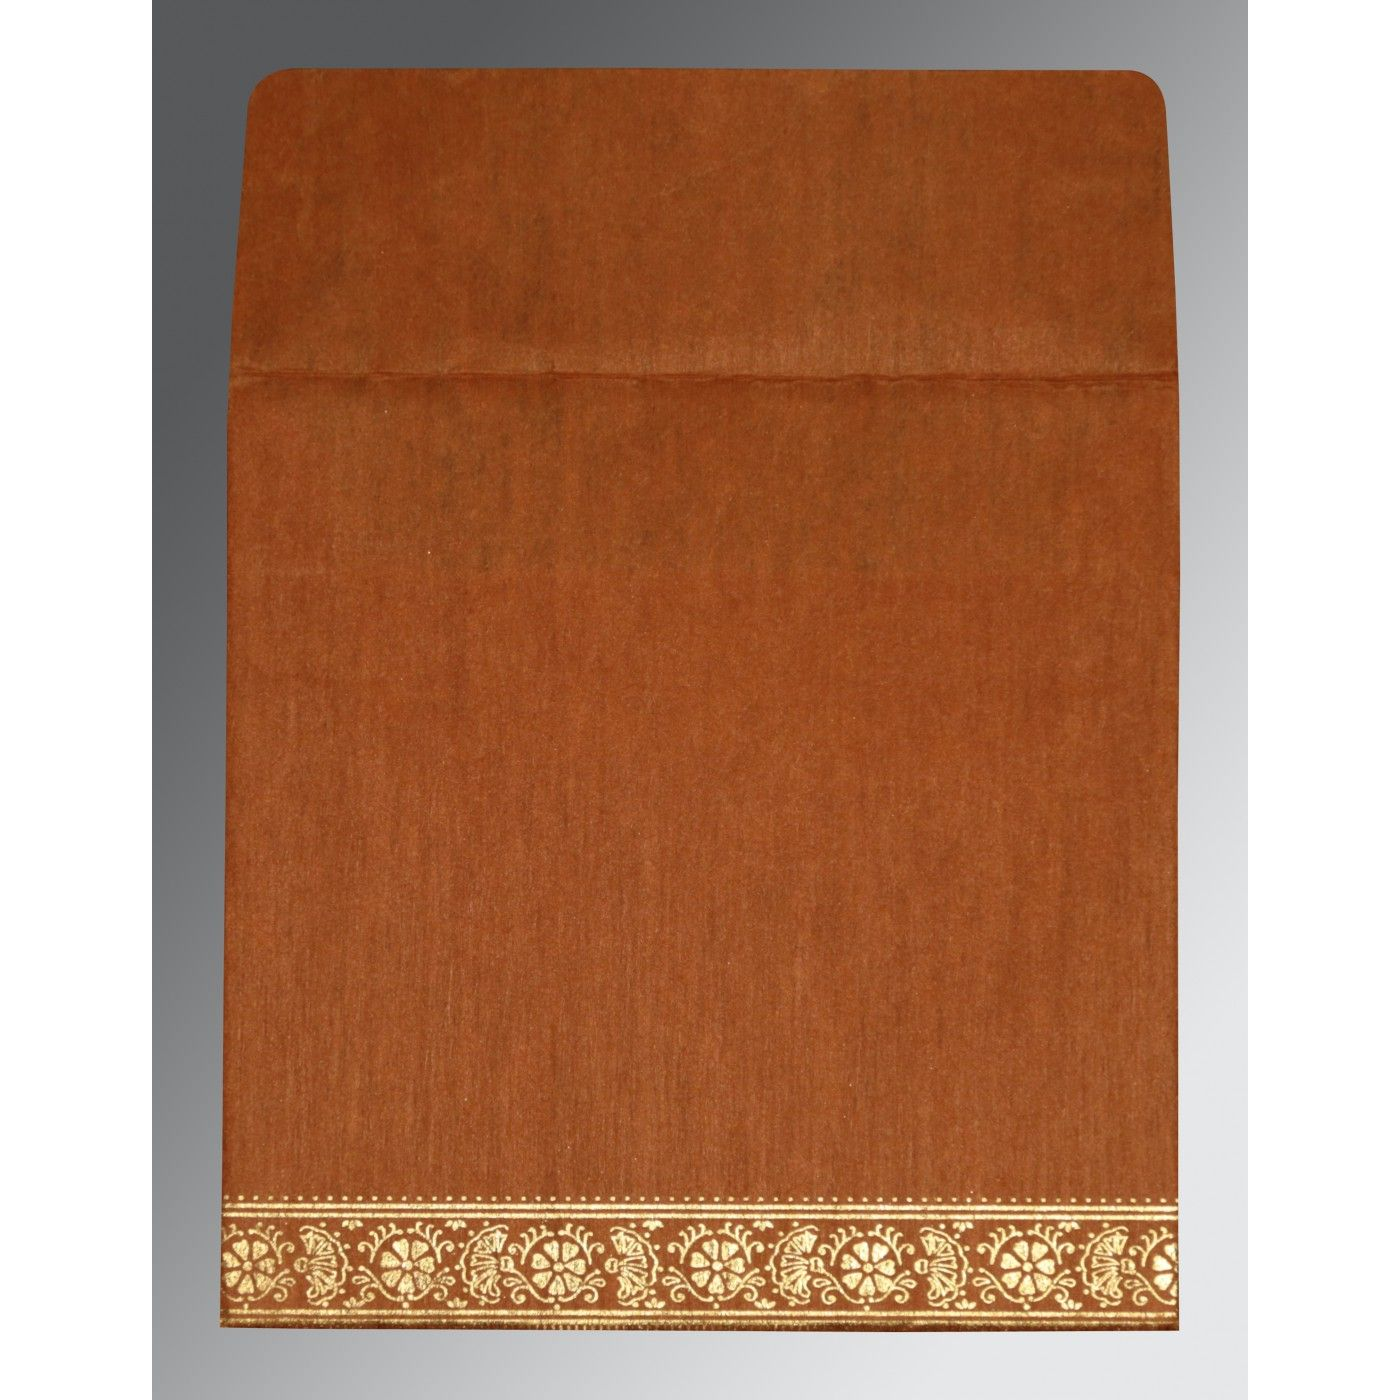 BURNT ORANGE WOOLY FOIL STAMPED WEDDING CARD : CD-8242E - IndianWeddingCards